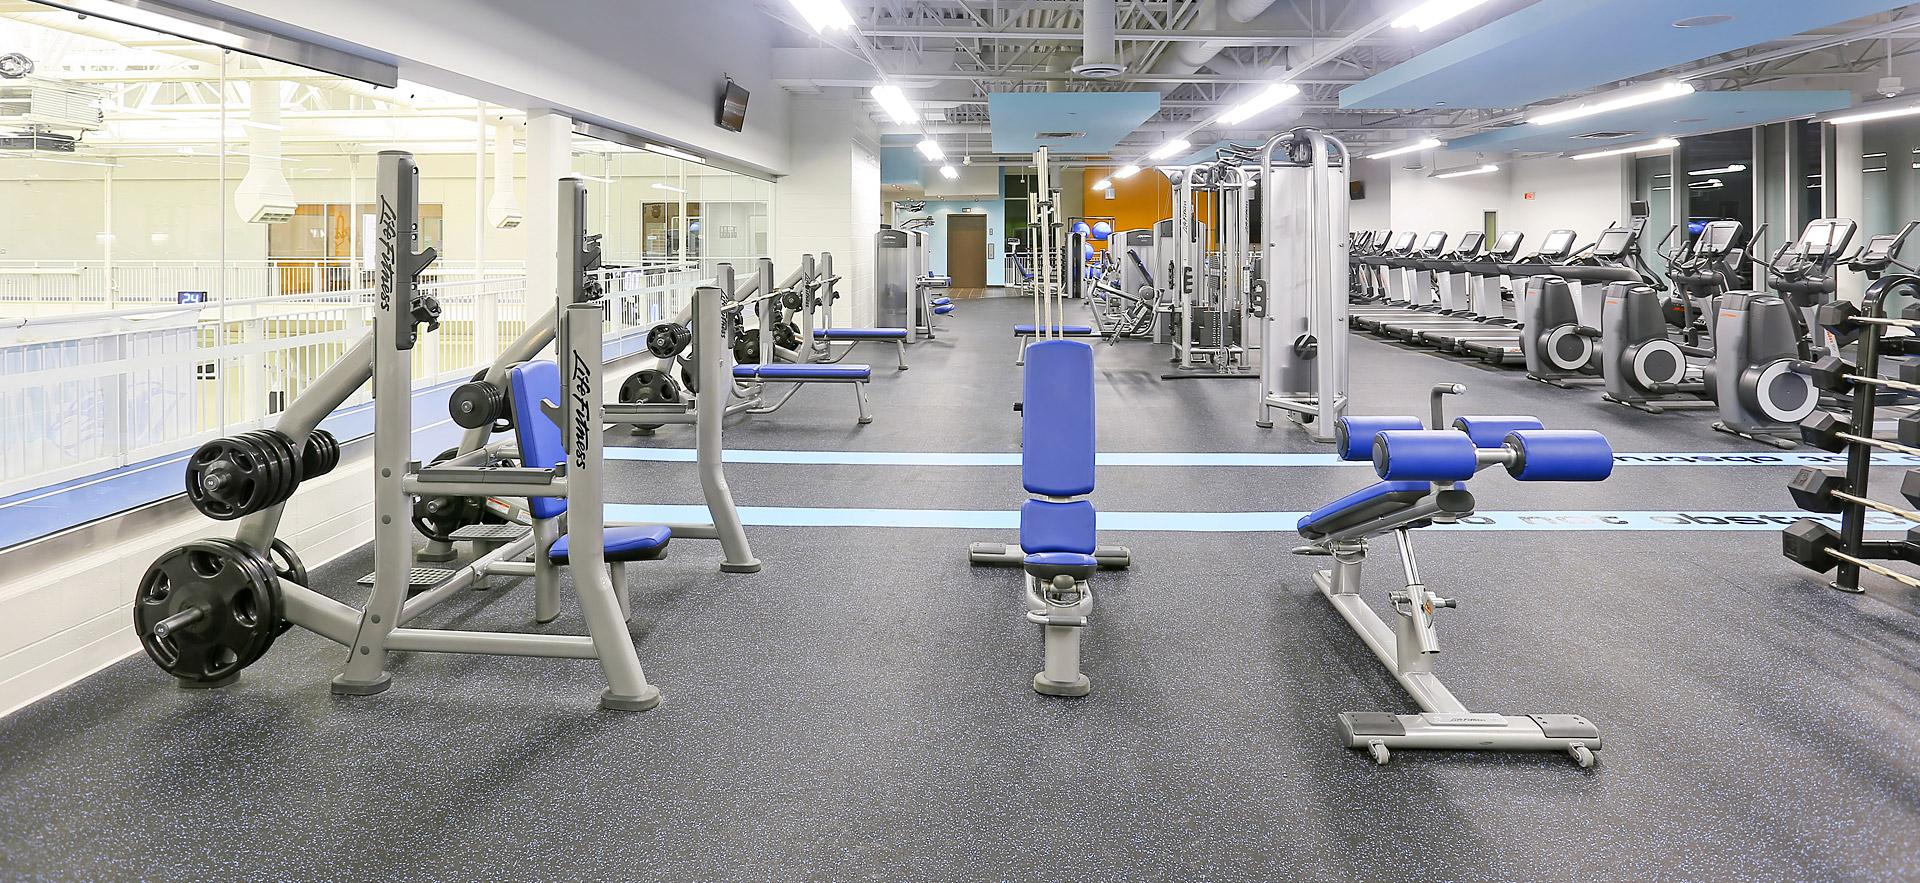 Interior view of the Sault College Fitness area.